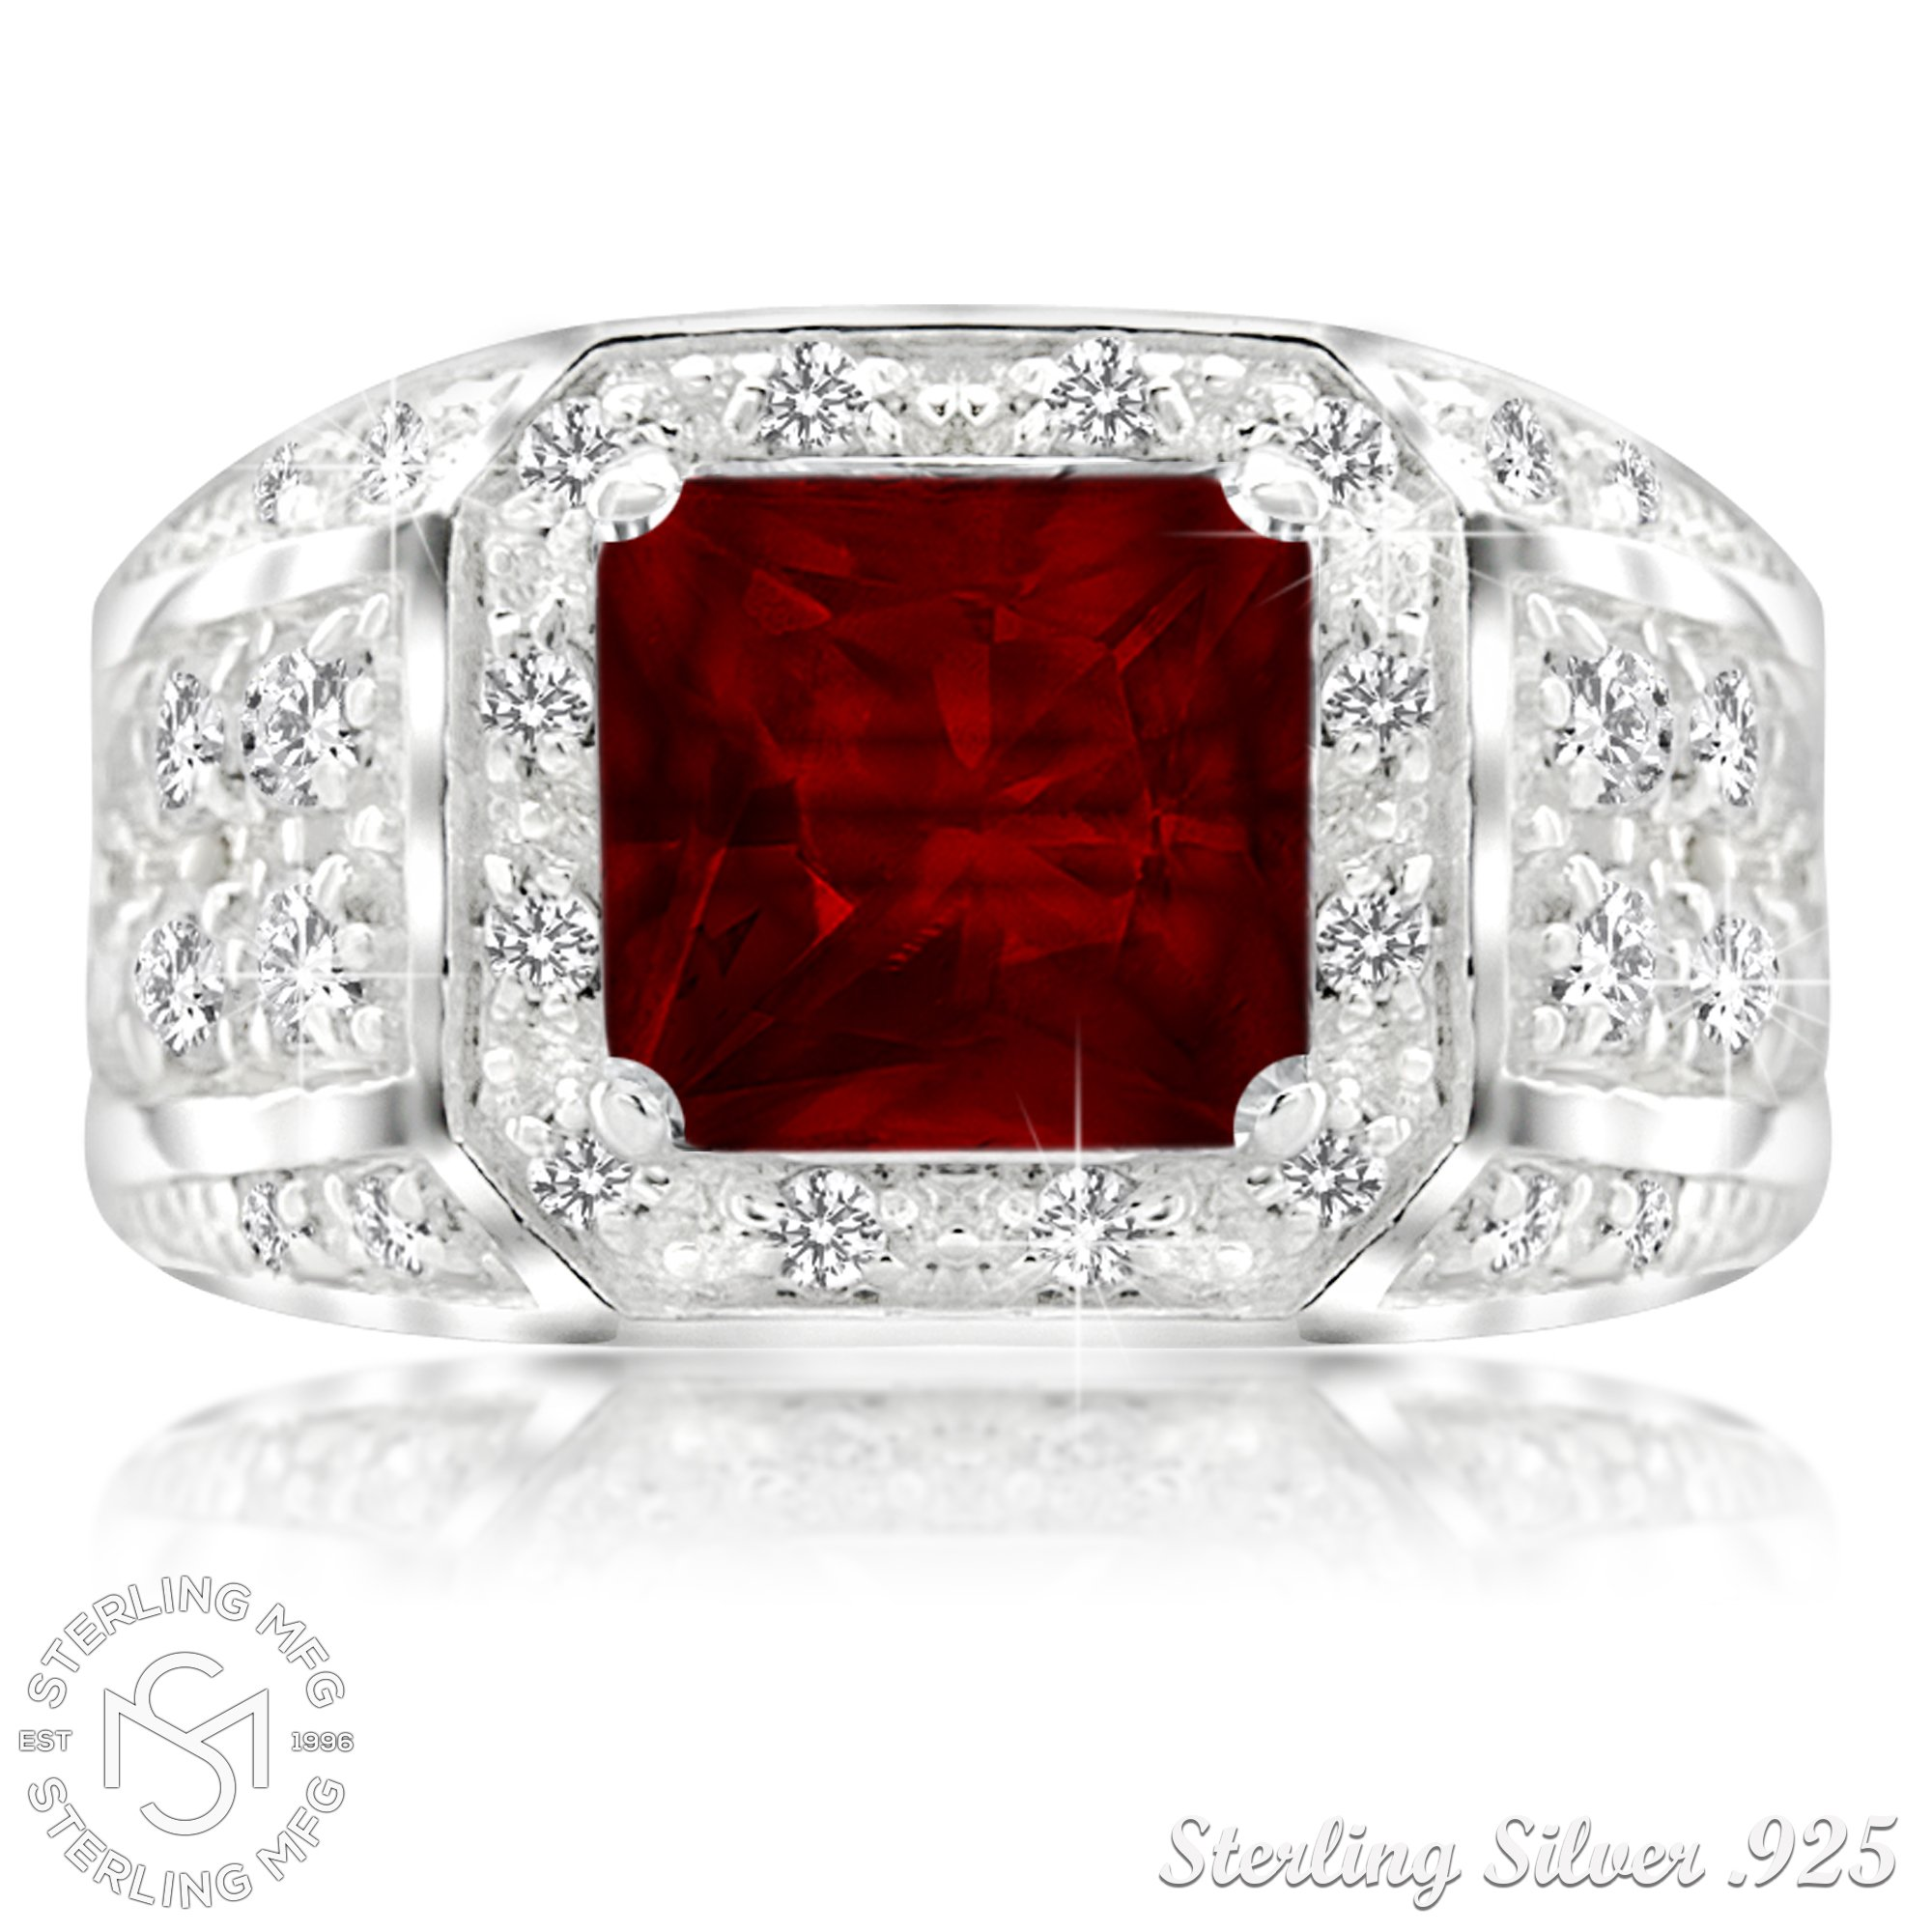 Men's Sterling Silver .925 Princess-Cut Ring Featuring a Synthetic Red Ruby Surrounded by 32 Fancy Round Prong-Set Cubic Zirconia Stones, Perfect for the Holidays (12) by Sterling Manufacturers (Image #2)